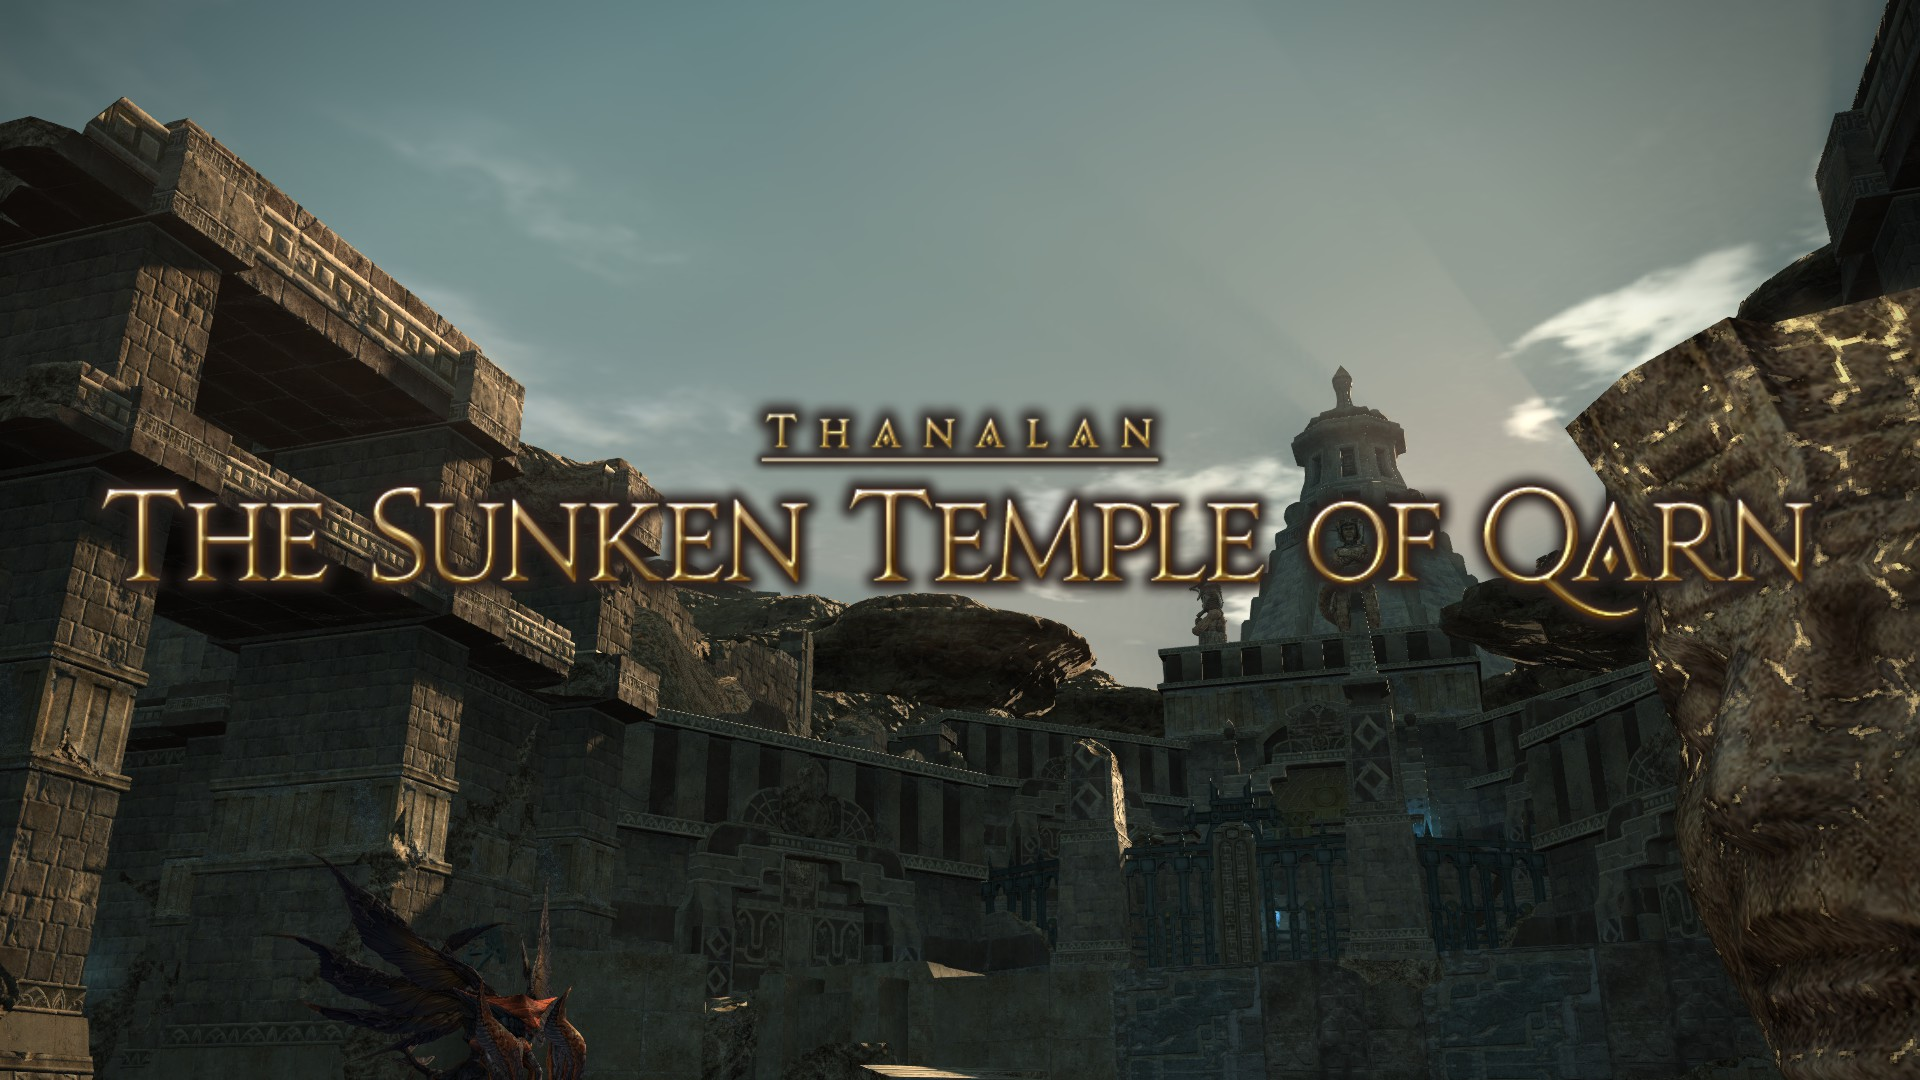 Final Fantasy XIV Guide - The Sunken Temple of Qarn Overview